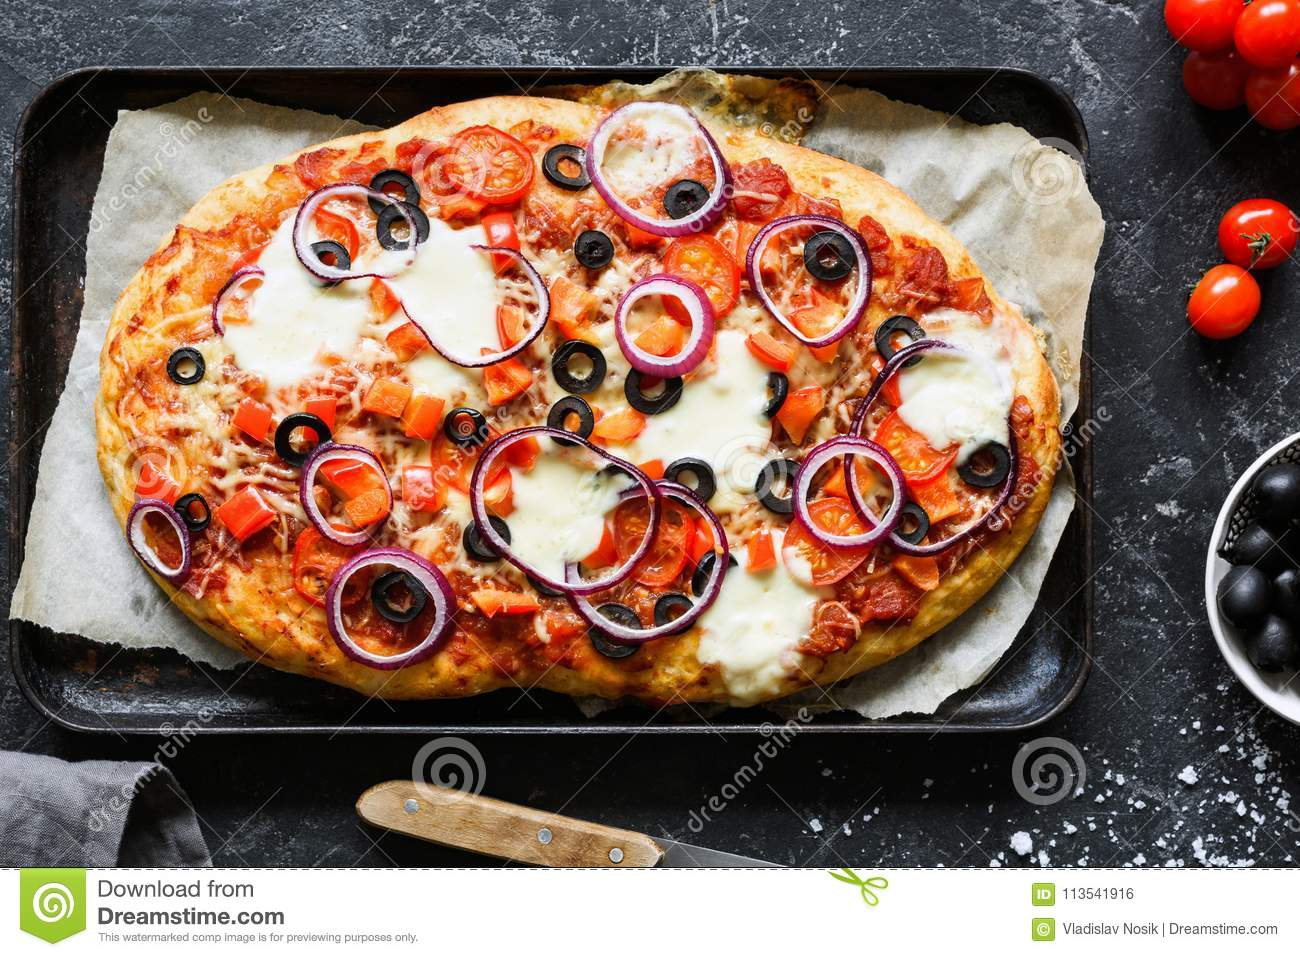 Homemade pizza with black olives, onion, tomato sauce, pepper and cheese on baking sheet